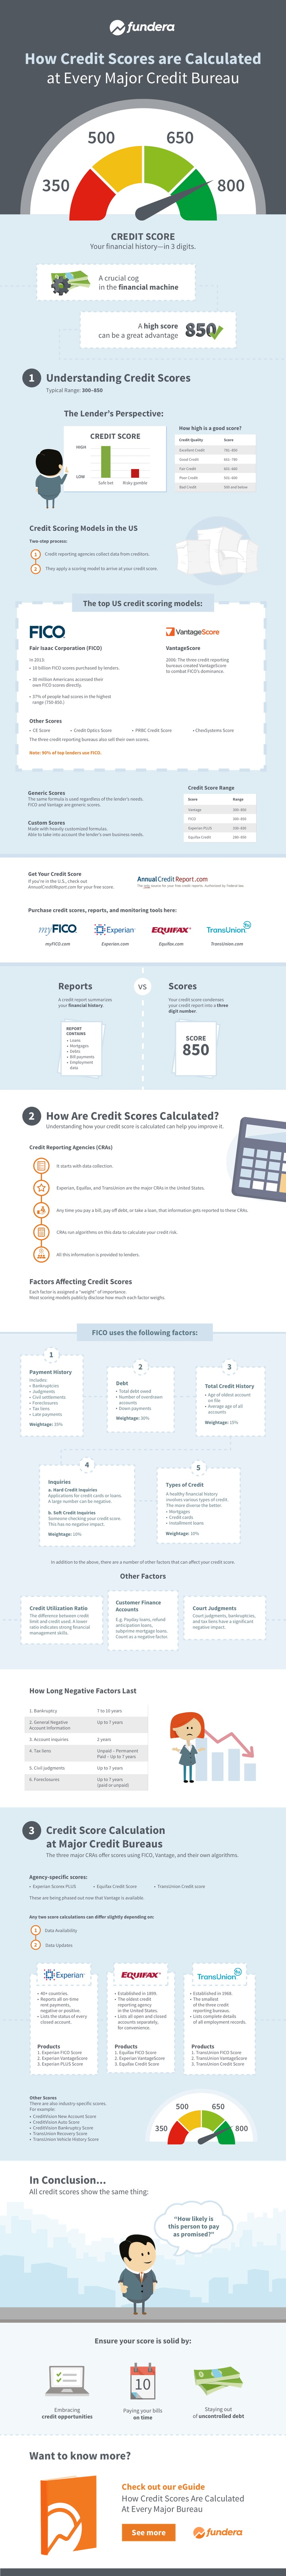 how-credit-scores-are-calculated-at-every-major-bureau-infographic